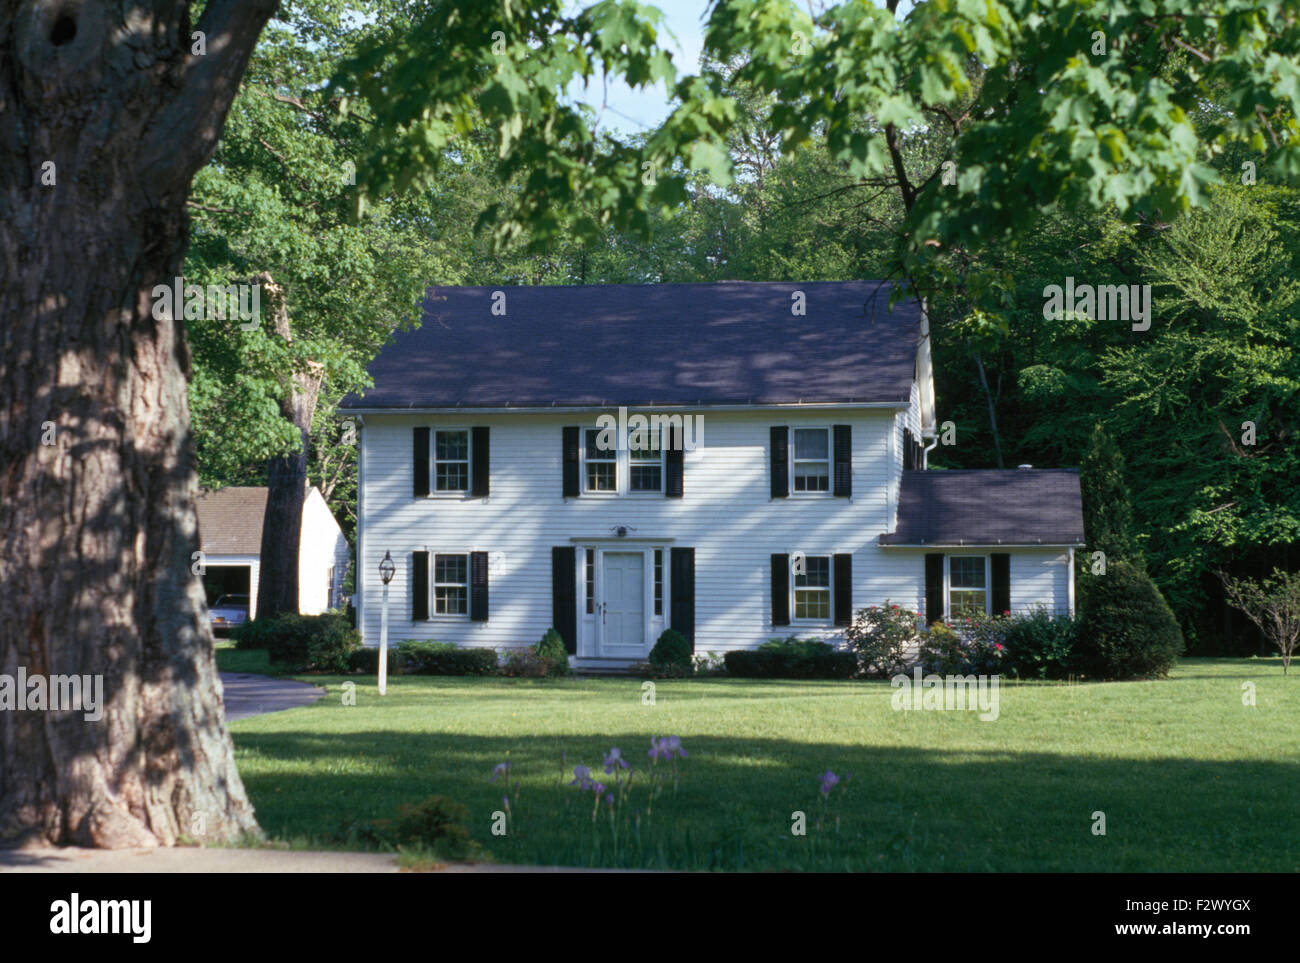 Exterior Of White Clapboard House With Black Shutters